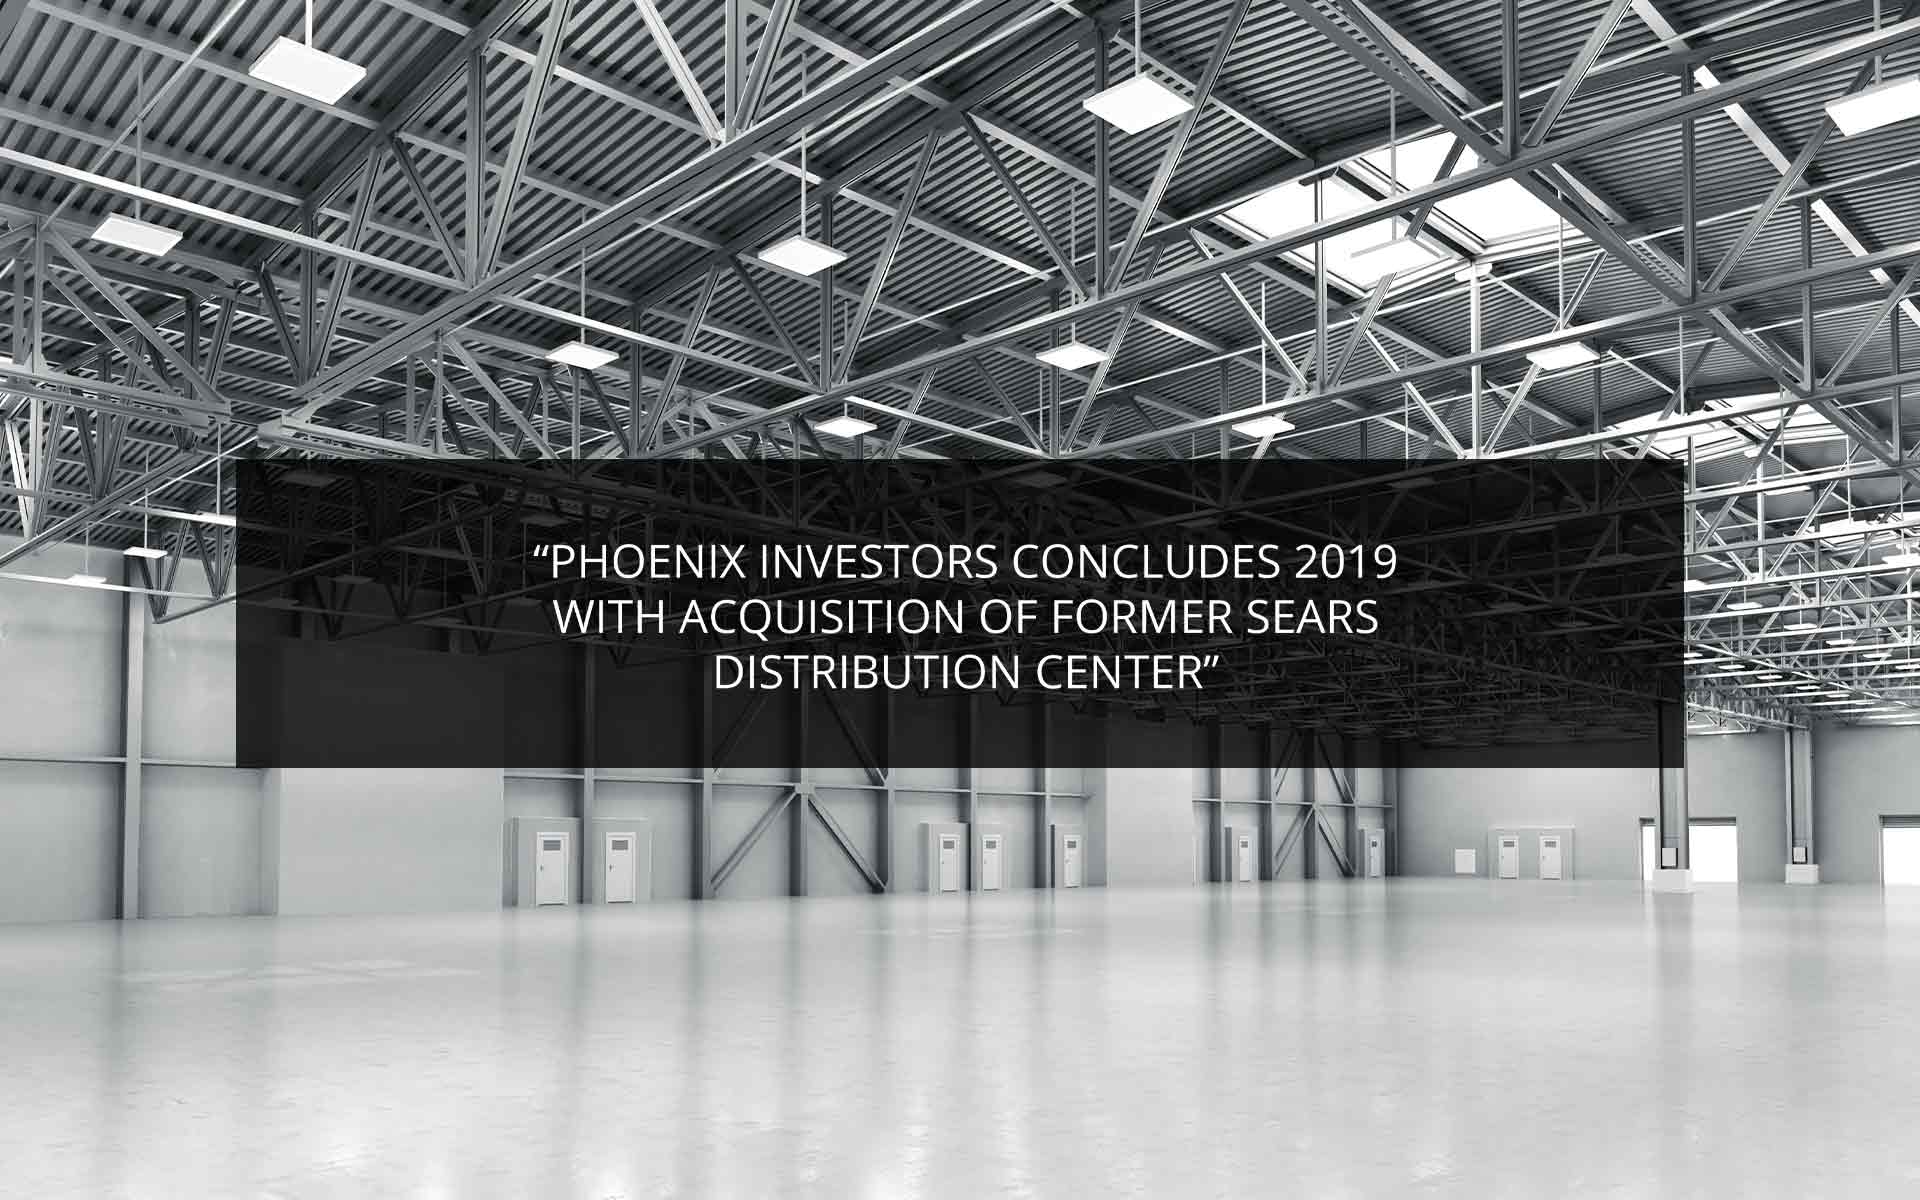 Phoenix Investors Concludes 2019 with acquisitions of Former Sears Distribution Center